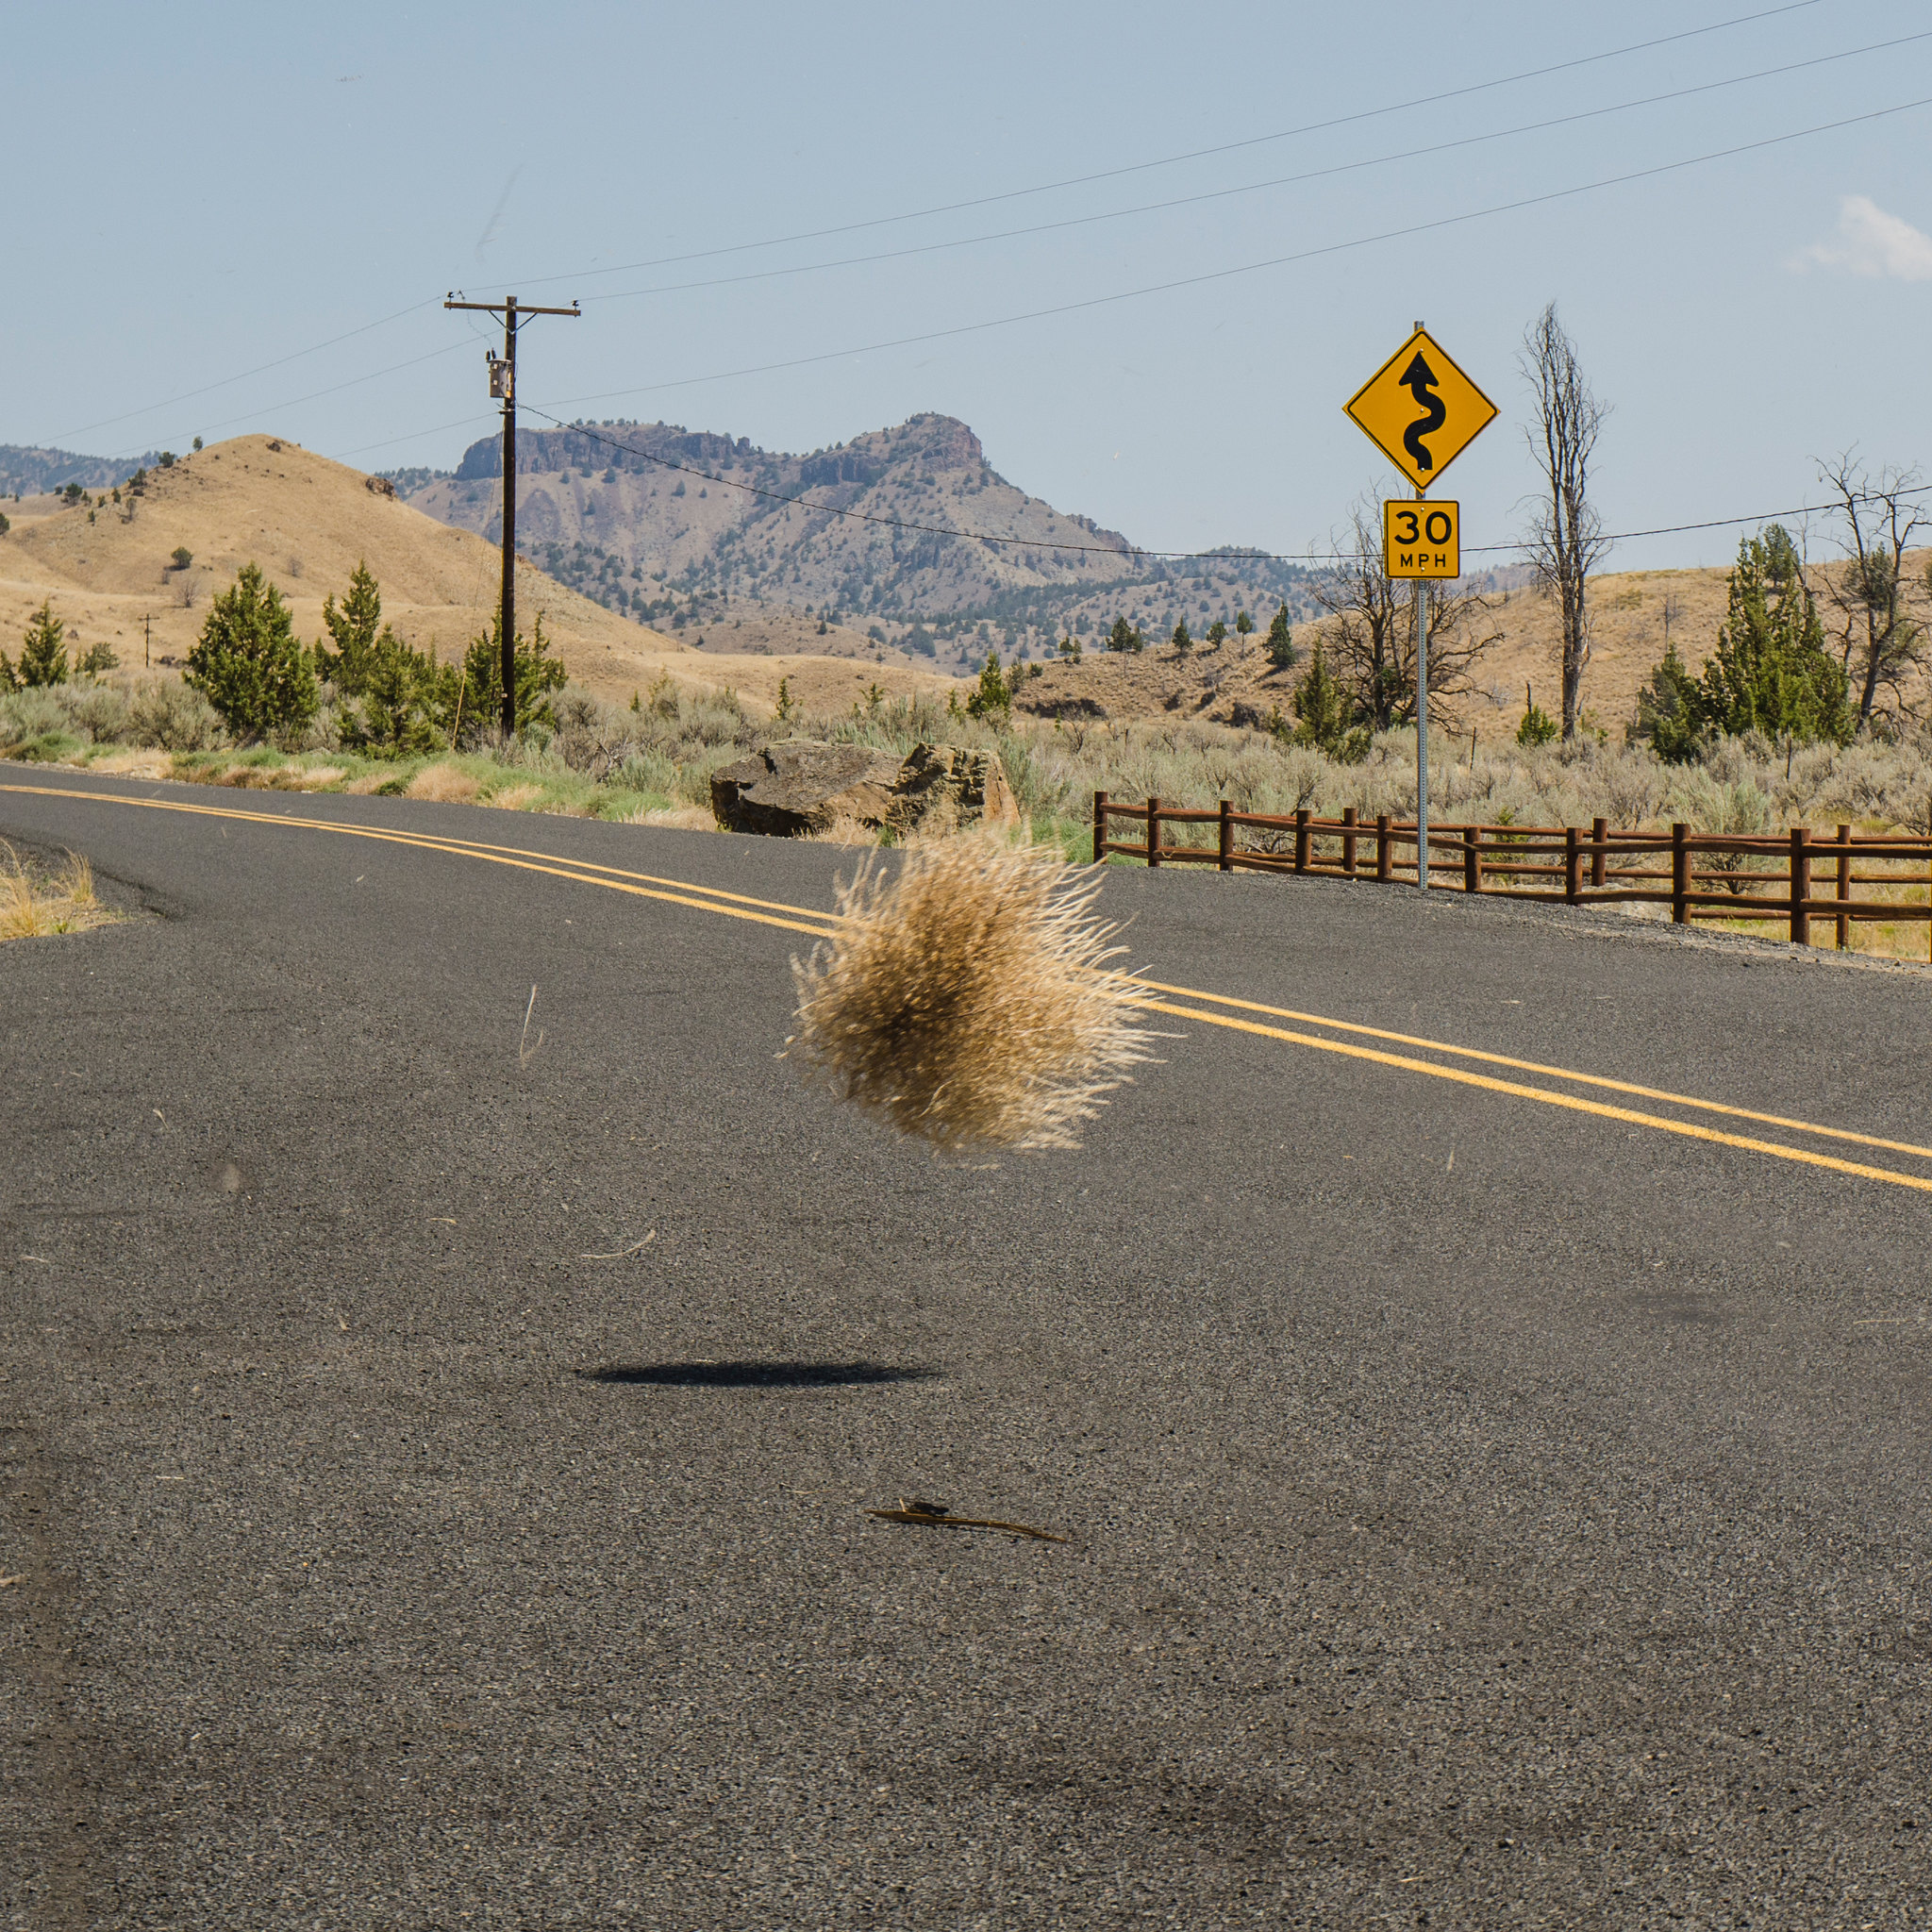 A tumbleweed bouncing over a highway.